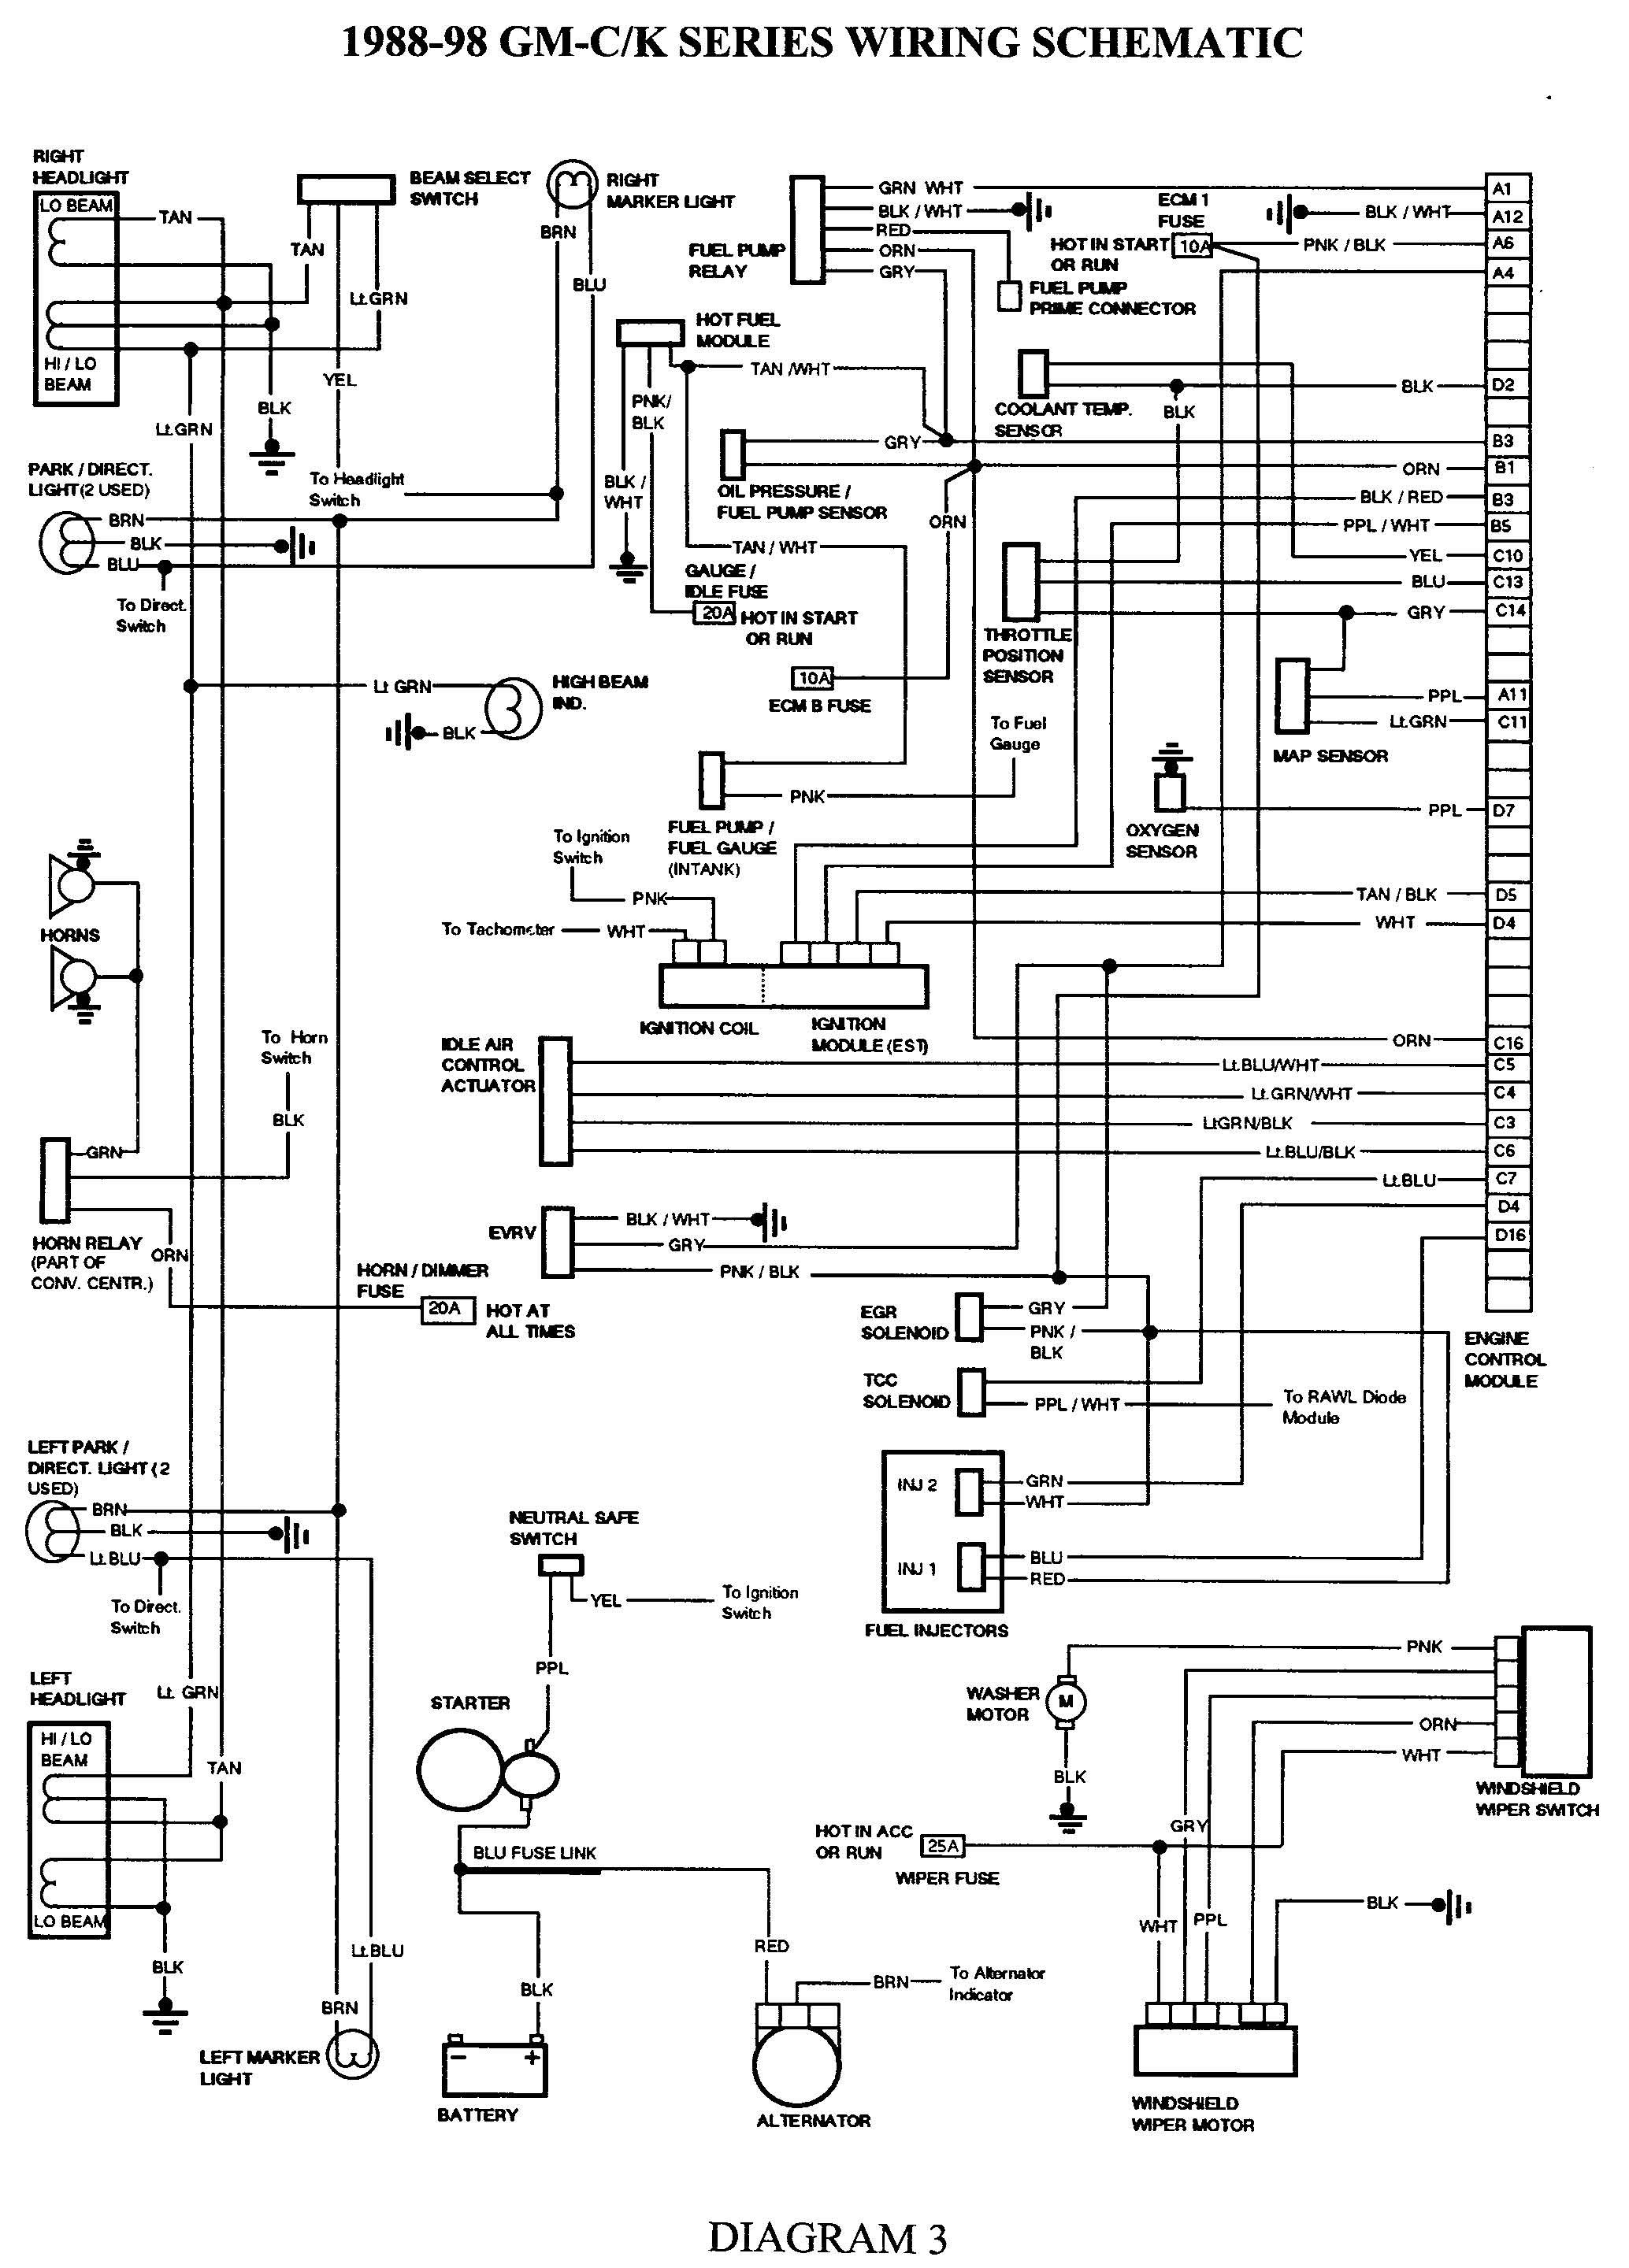 chevrolet headlight switch wiring diagram free download how to rh csq carnival pinnion com Cadillac Wiring Schematics Cadillac Wiring Schematics